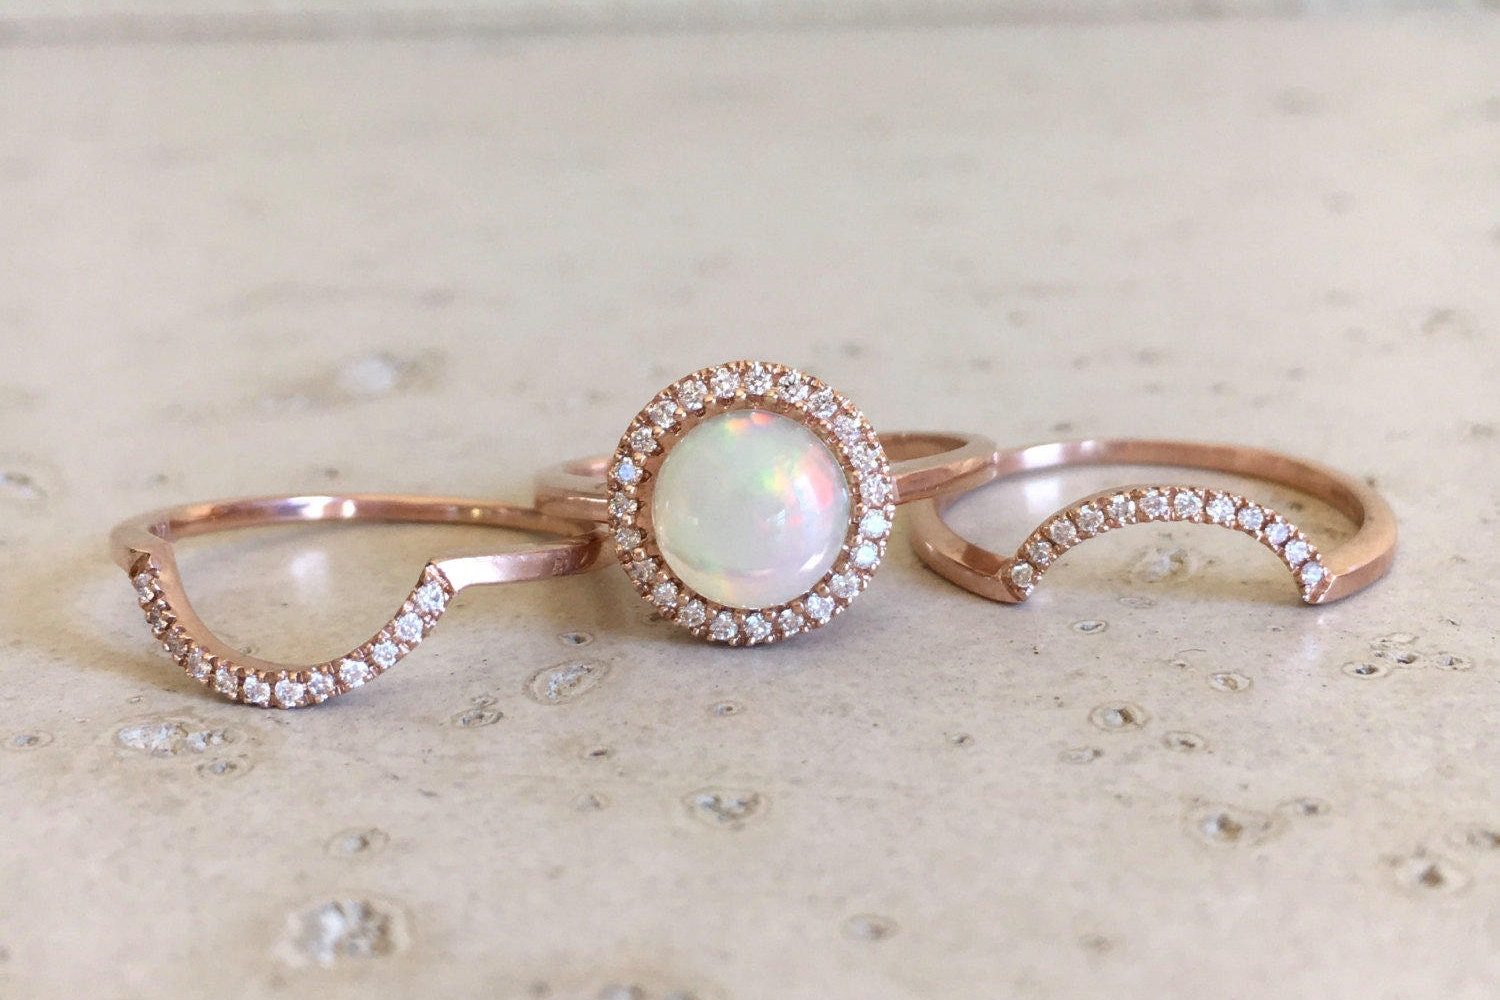 Round Opal Engagement Ring  Rose Gold Opal Engagement Ring Set  Genuine Opal  Bridal Set Ring  Fire Opal Halo Wedding Ring Set